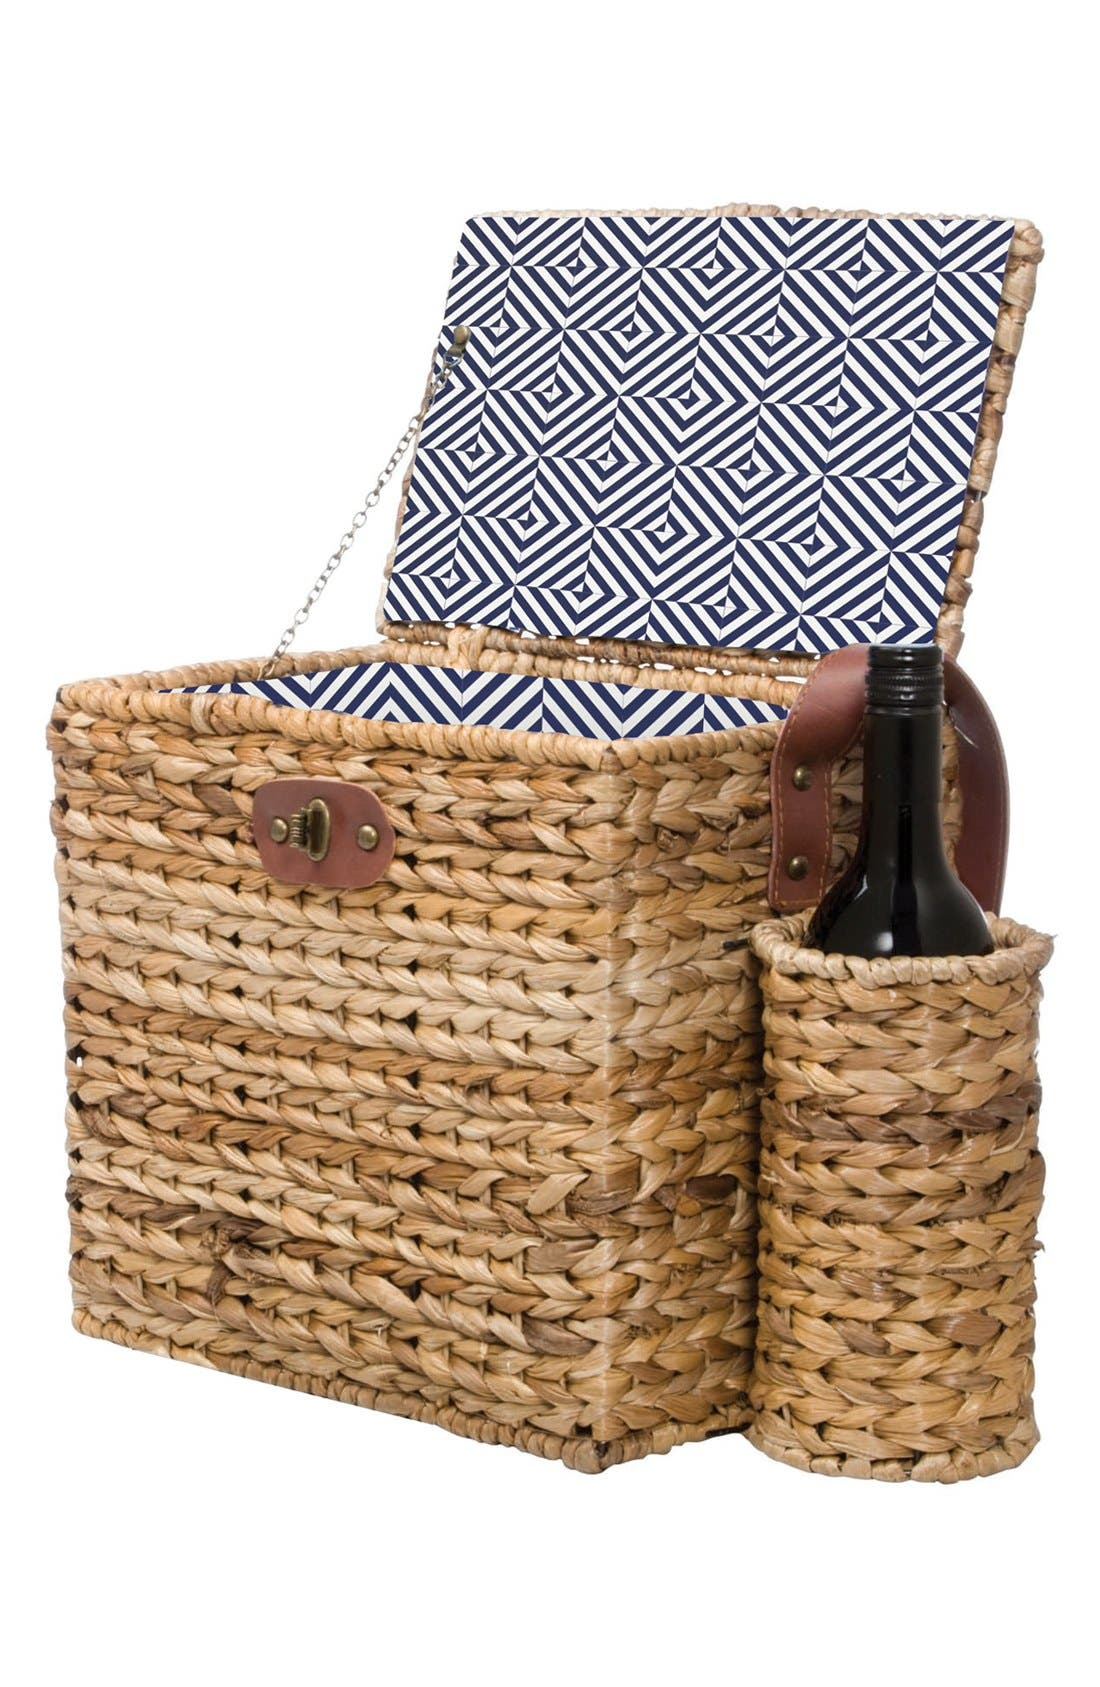 Main Image - Sunnylife Wicker Picnic Basket